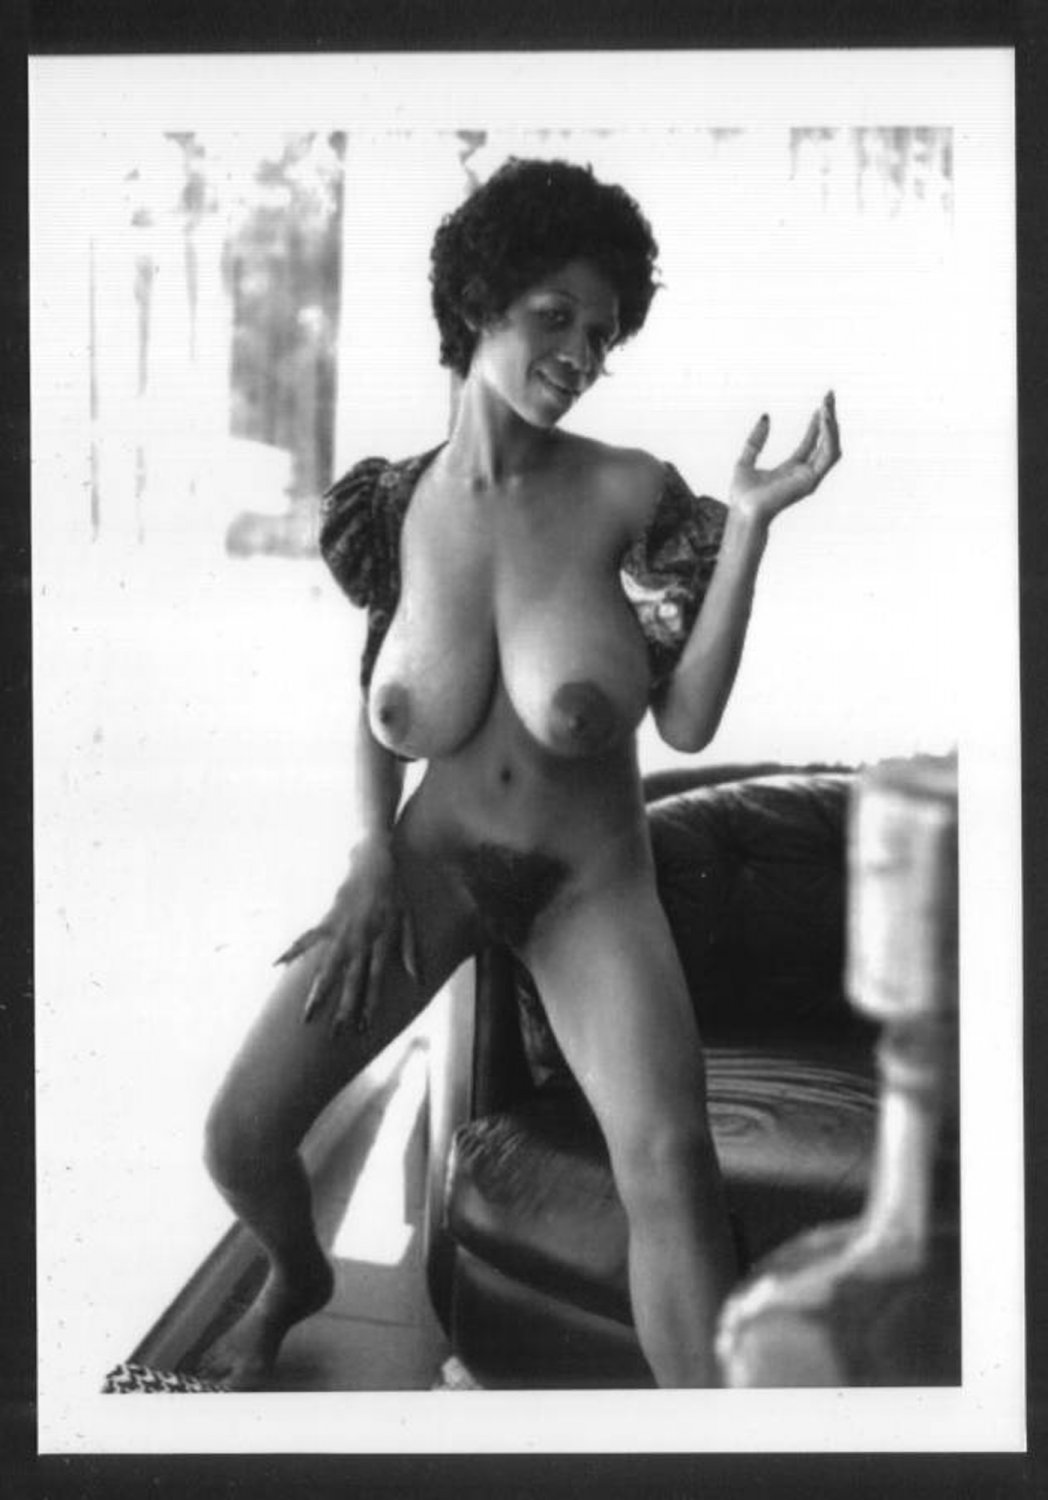 EBONY SYLVIA MCFARLAND TOPLESS NUDE HUGE BREASTS HAIRY PUSSY NEW REPRINT 5X7 SM-91